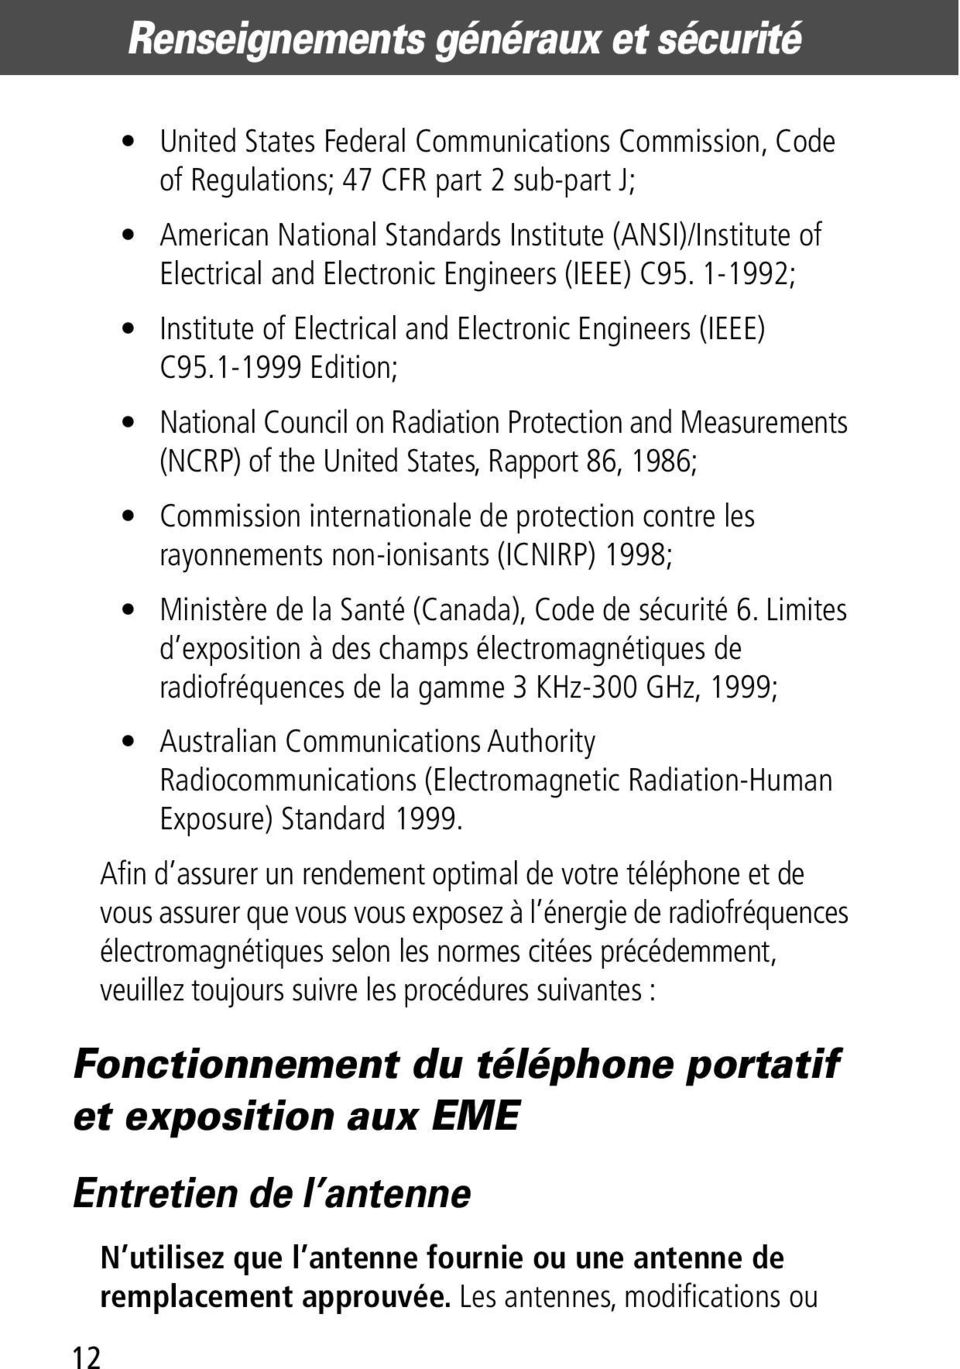 1-1999 Edition; National Council on Radiation Protection and Measurements (NCRP) of the United States, Rapport 86, 1986; Commission internationale de protection contre les rayonnements non-ionisants